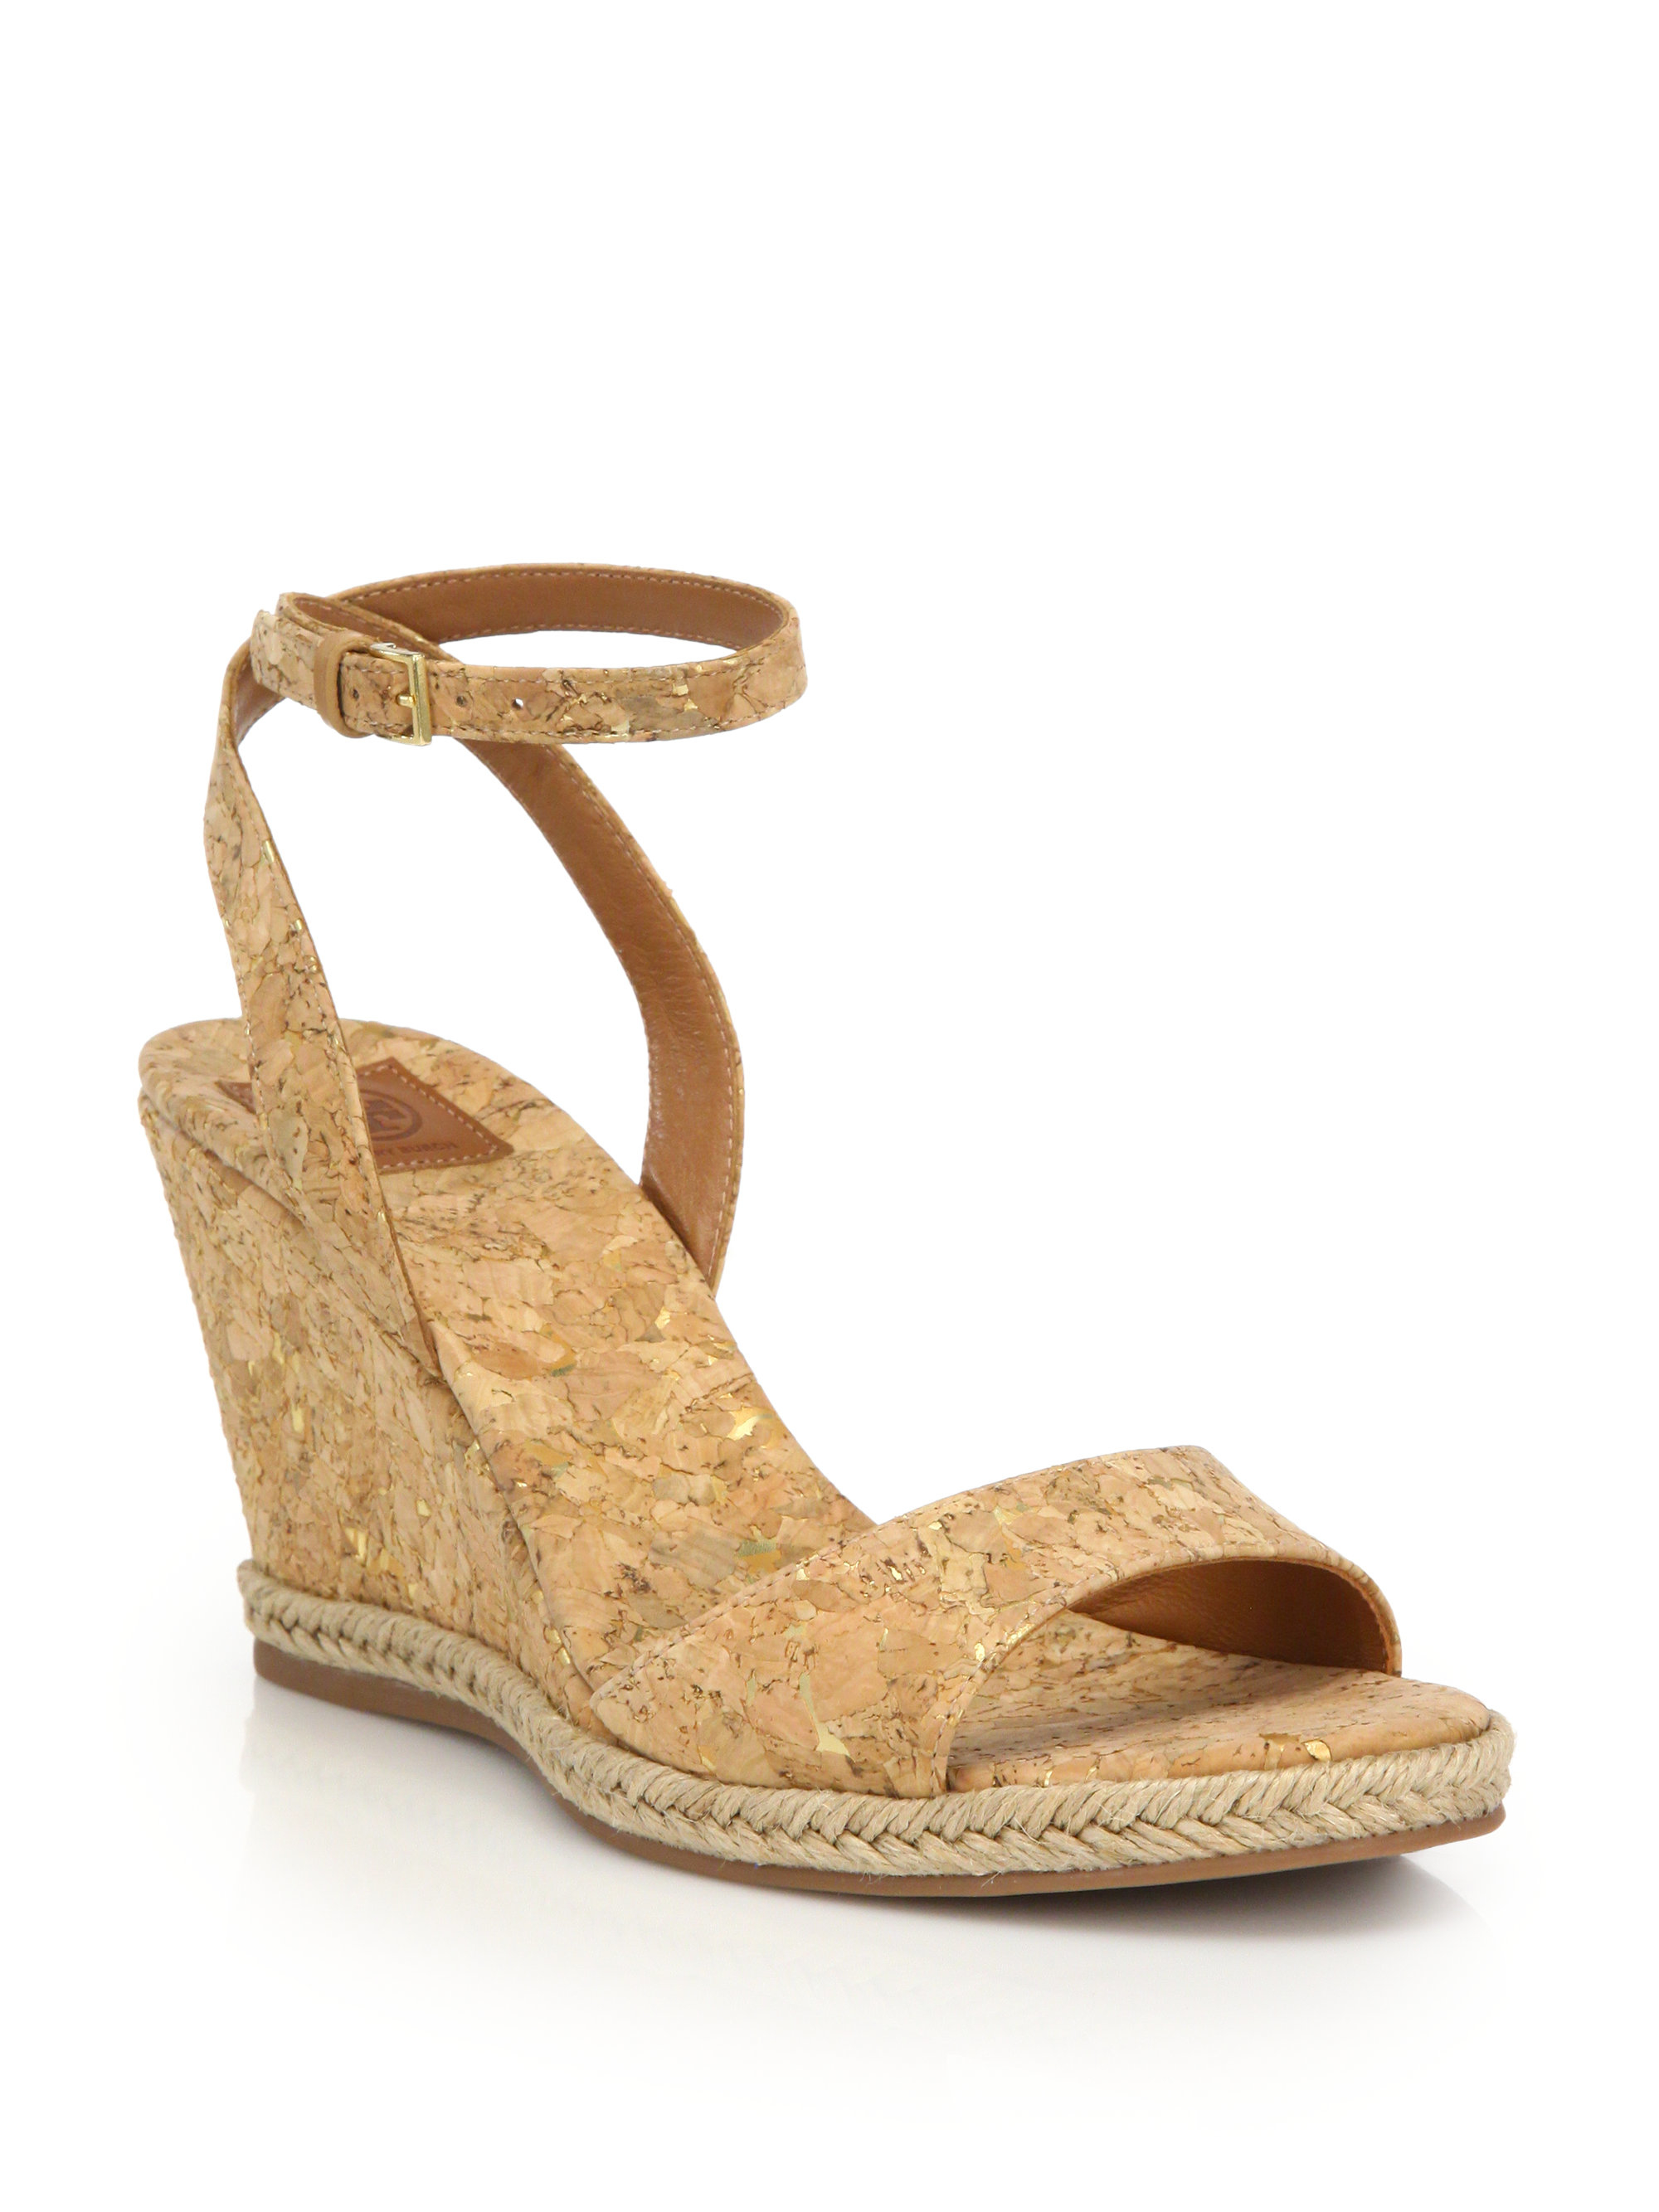 ff7973f60f4afa Lyst - Tory Burch Marion Cork Wedge Sandals in Natural